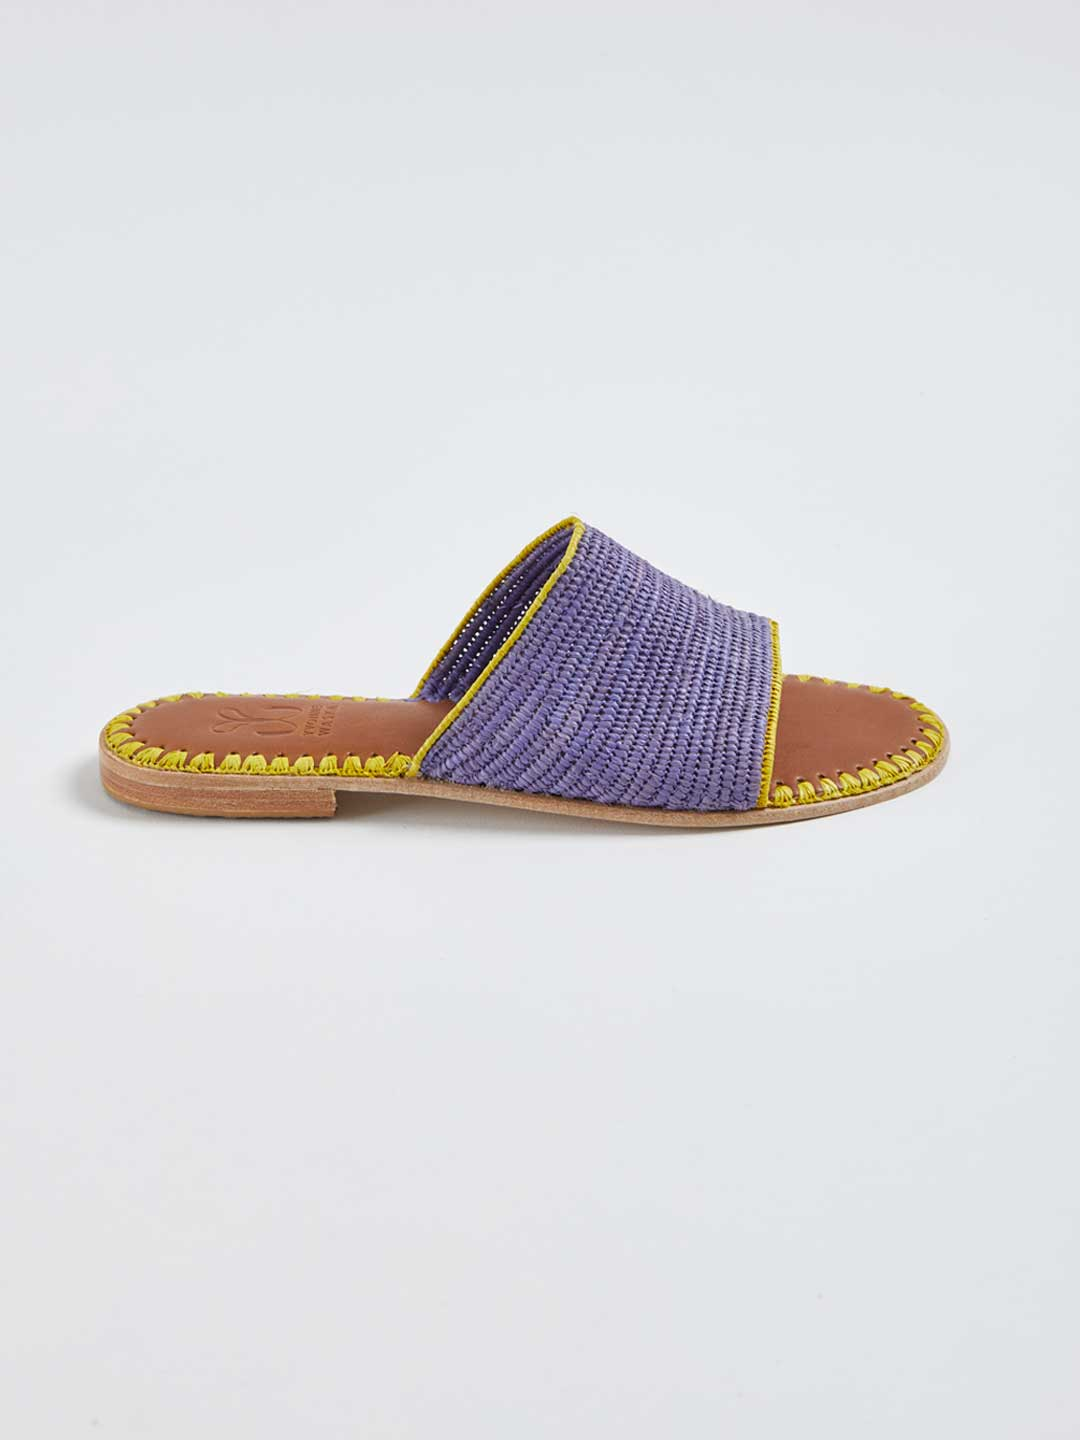 ROSALIE Hand Woven Flat Sandals - Purple